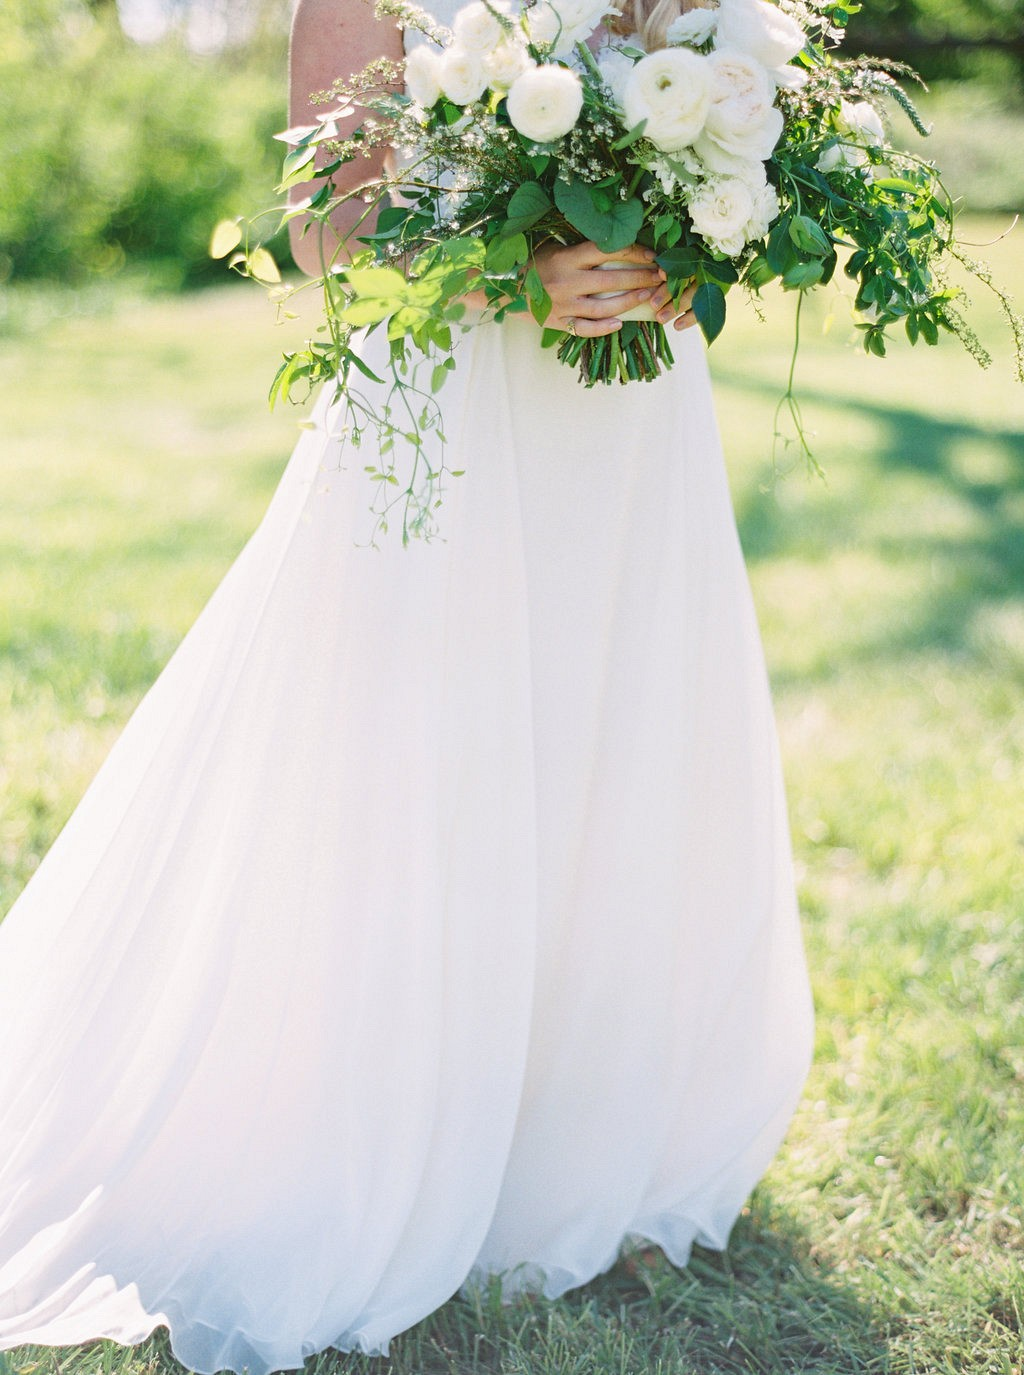 Stanley Korshak gown | Heartfelt and Nostalgic Indiana Barn Wedding by Renee Lemaire | Wedding Sparrow fine art wedding blog